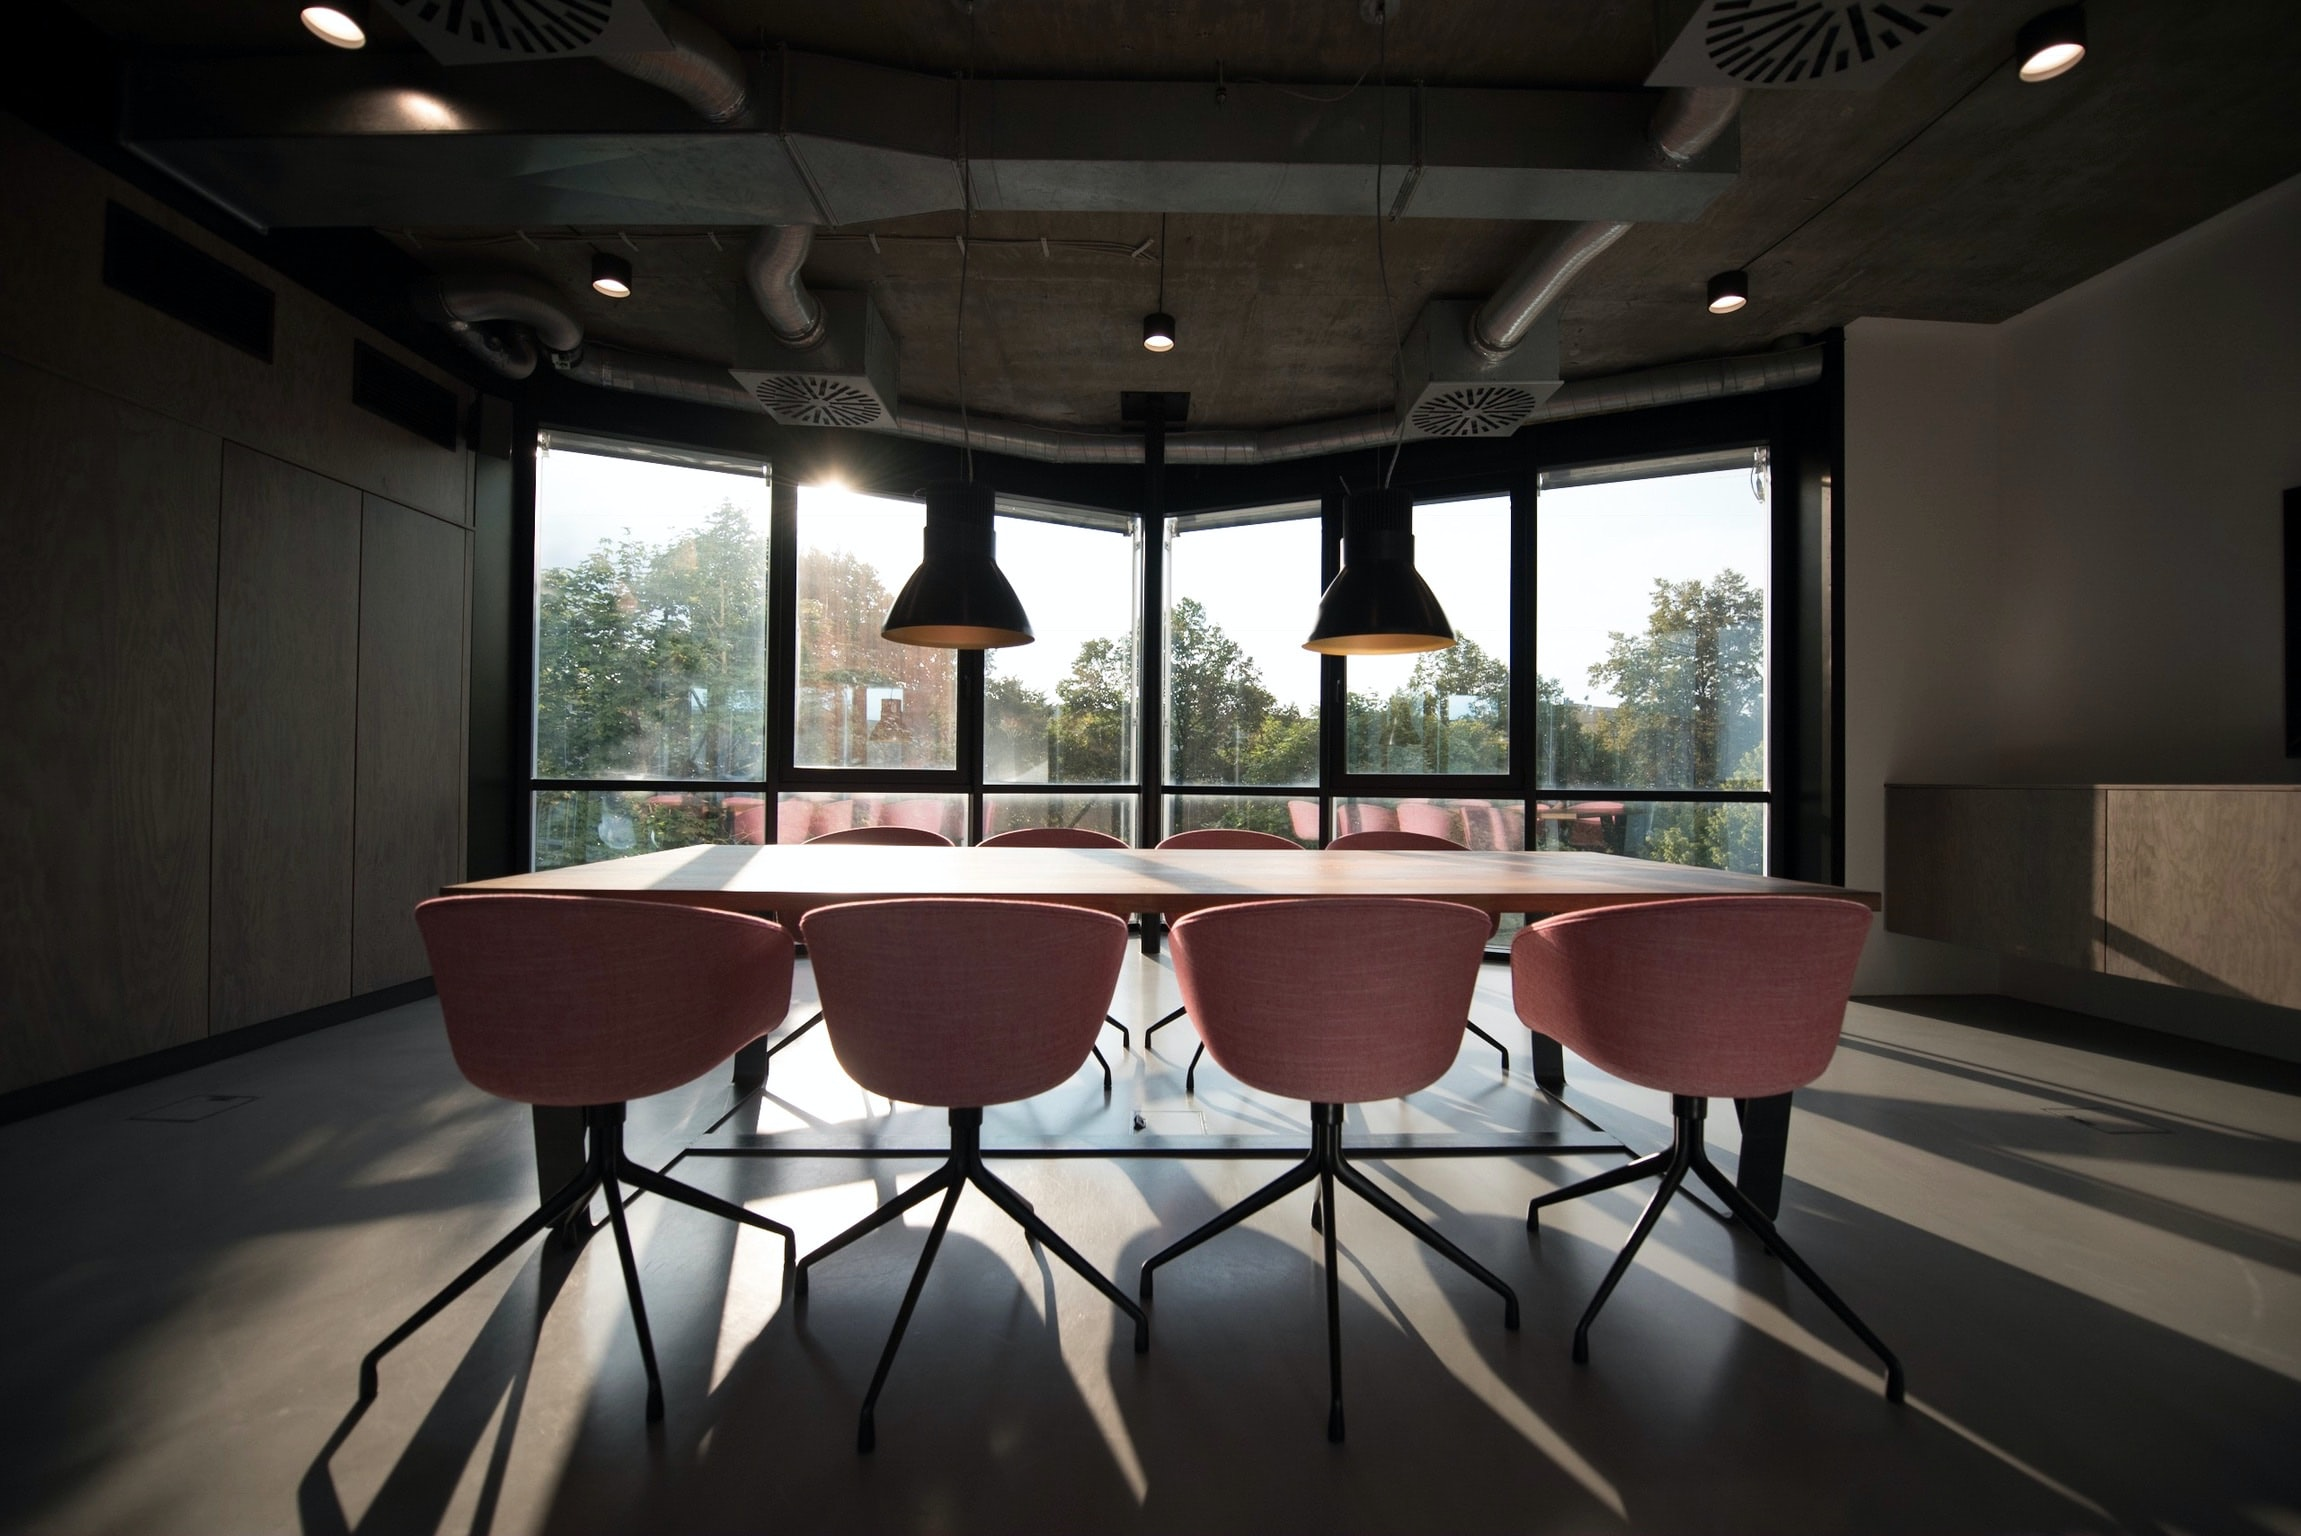 Picture of: Pink Dining Table With Four Chairs Inside Room Photo Free Meeting Room Image On Unsplash